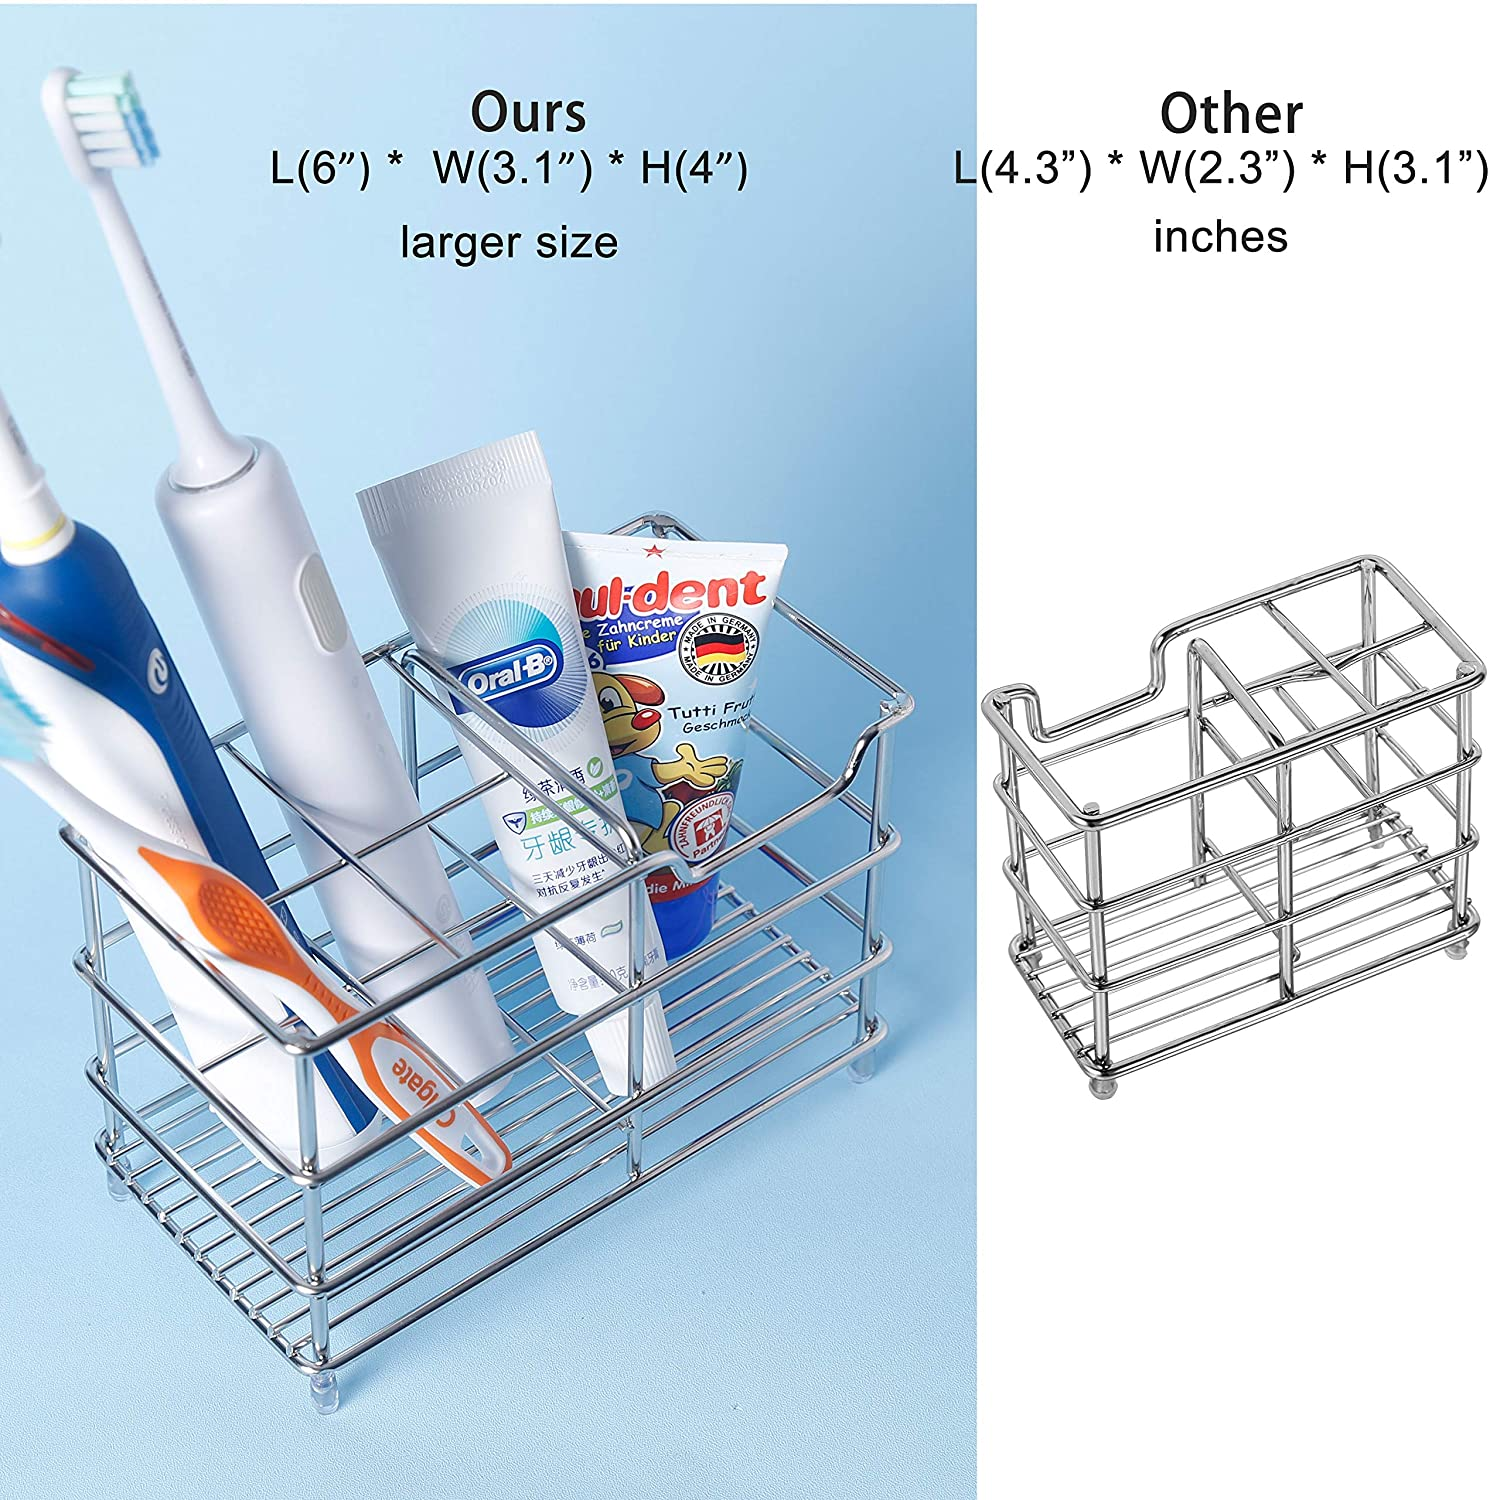 WEBI 6 Inch Stainless Steel 304 Toothbrush, Electronic Toothbrush, Toothpaste Holder Organizer Stand Case /– Large Capacity, Wire, Quick Drain, Anti-dust, 4 + 1 Slots